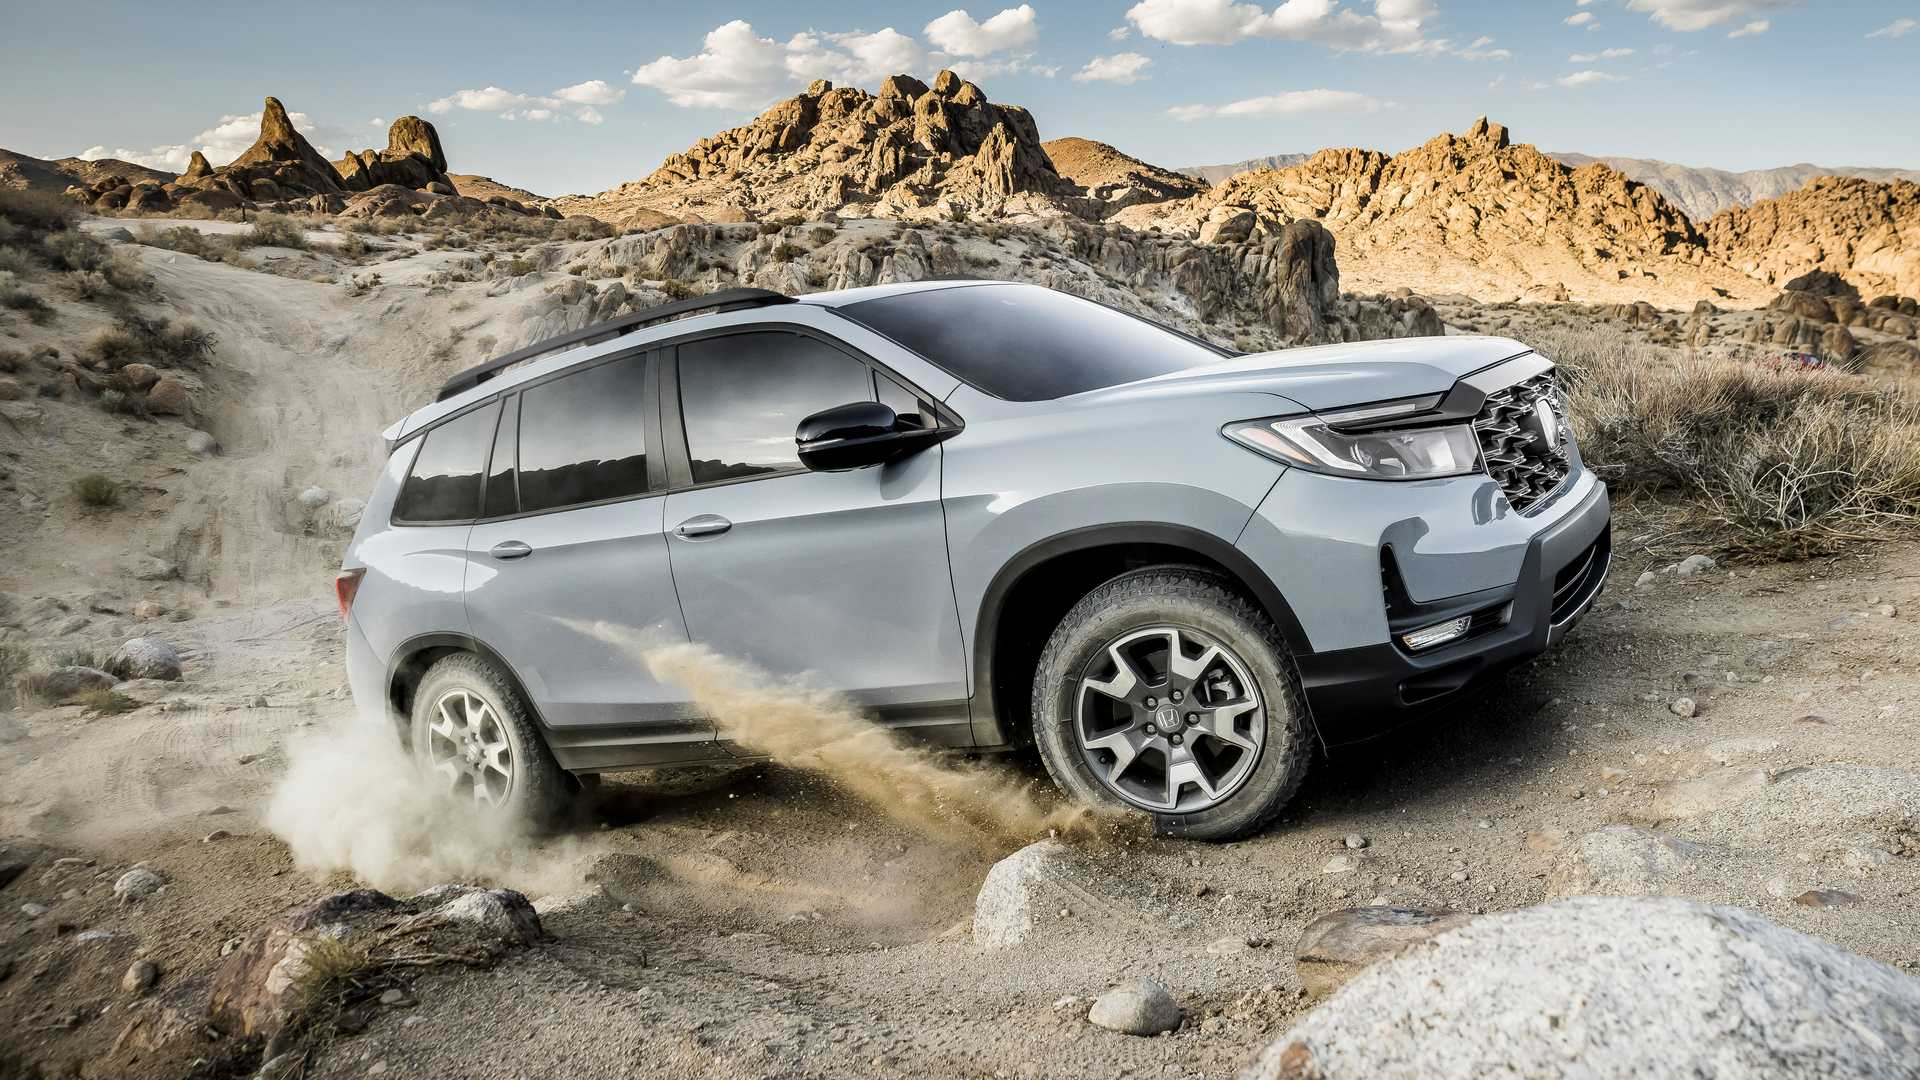 The 2022 Honda Passport facelift is here along with a new off-road-friendly edition called TrailSport. Sales in the United States will begin in winter.